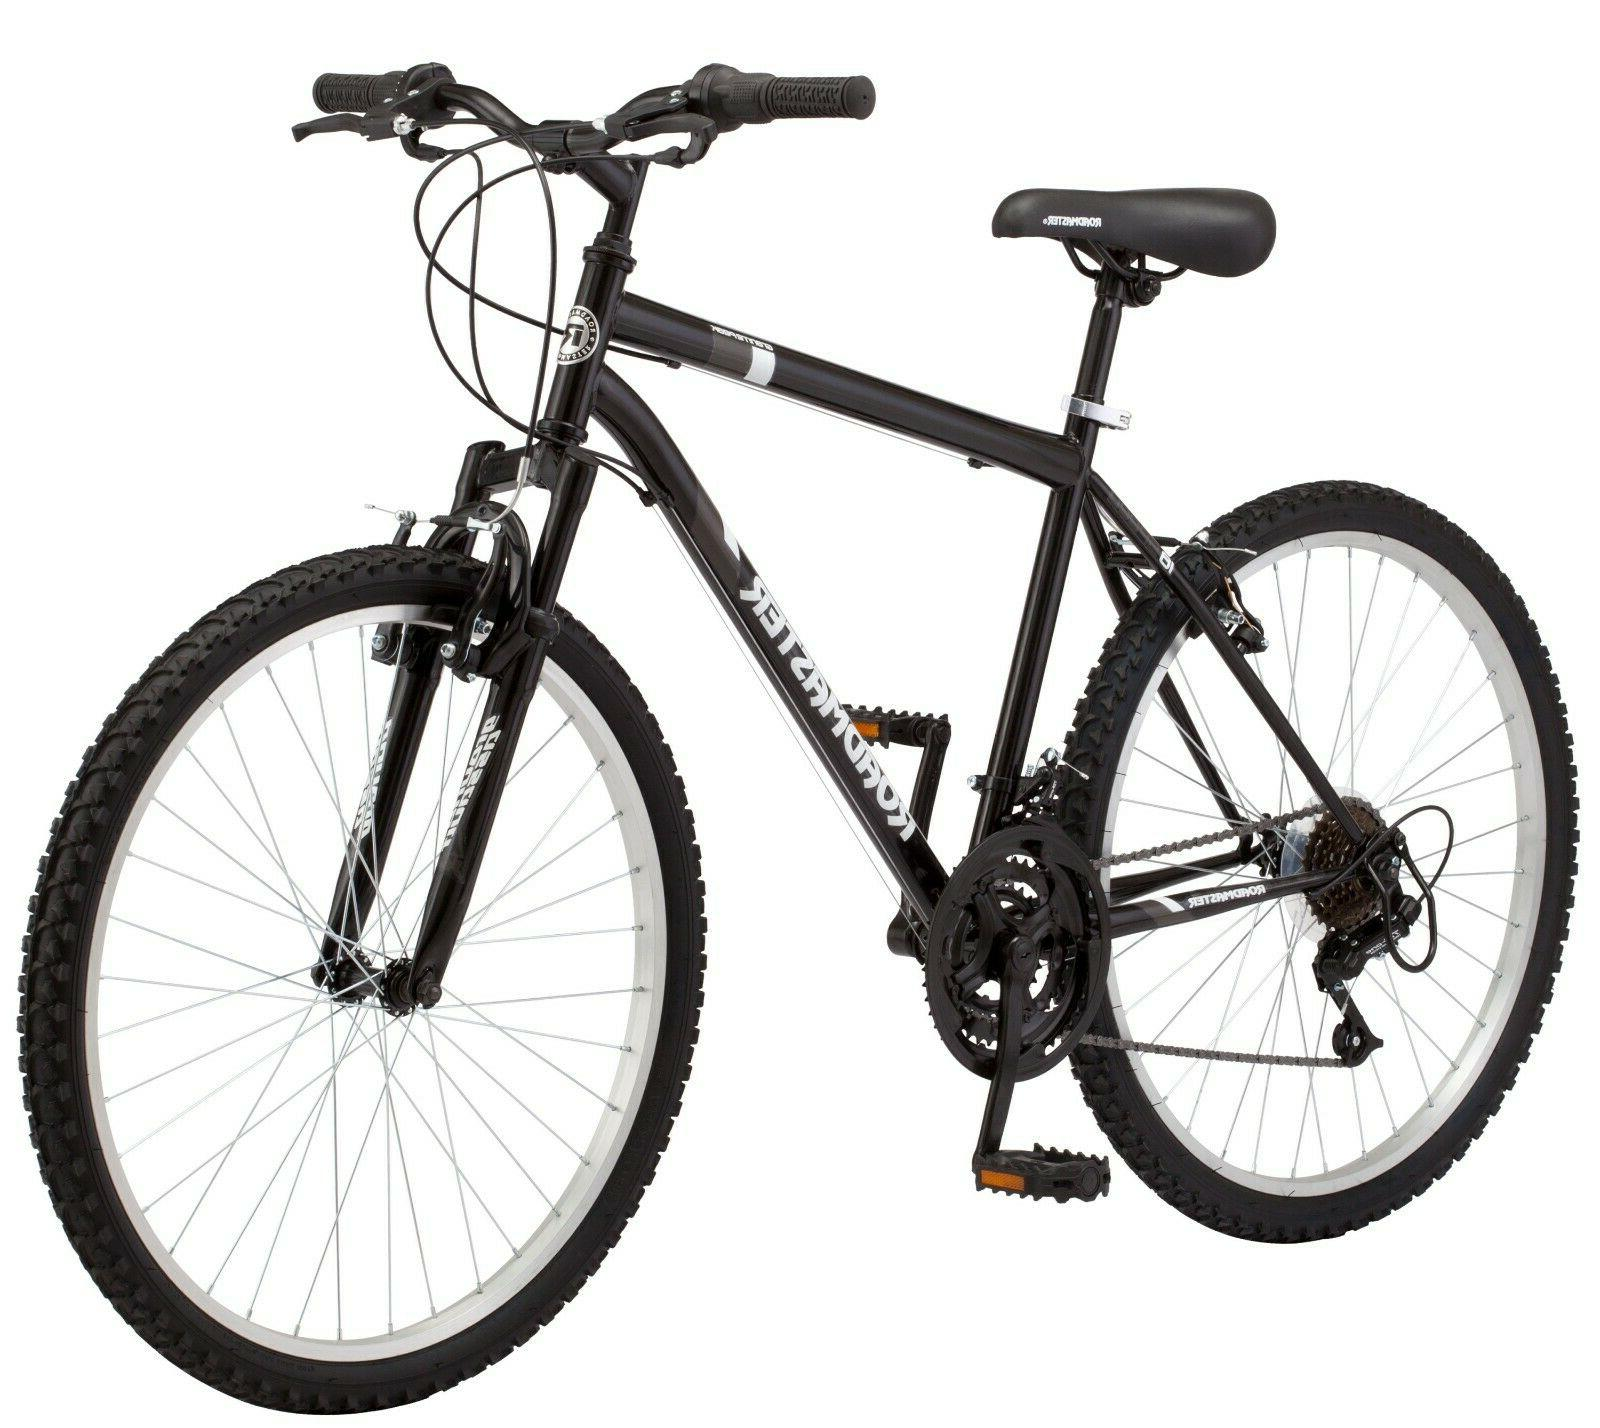 Granite Peak Mens Mountain Adult Bike 26 Inch Wheels Black W